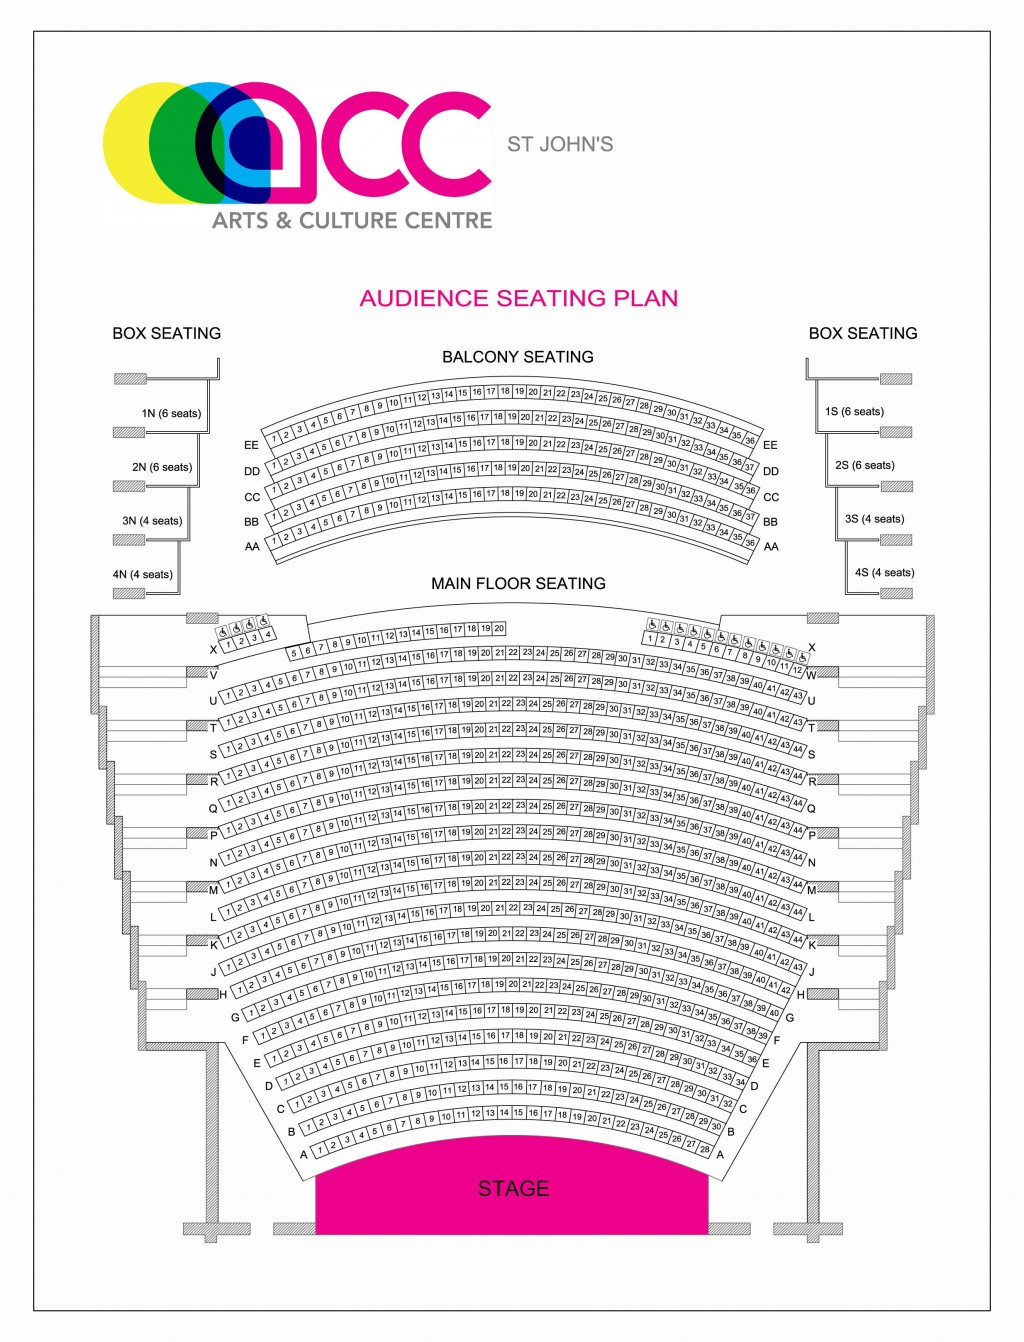 026 Acc St20johns Audience20seating20plan Jan2019 Essay Example Vcu Personal Remarkable Statement Large